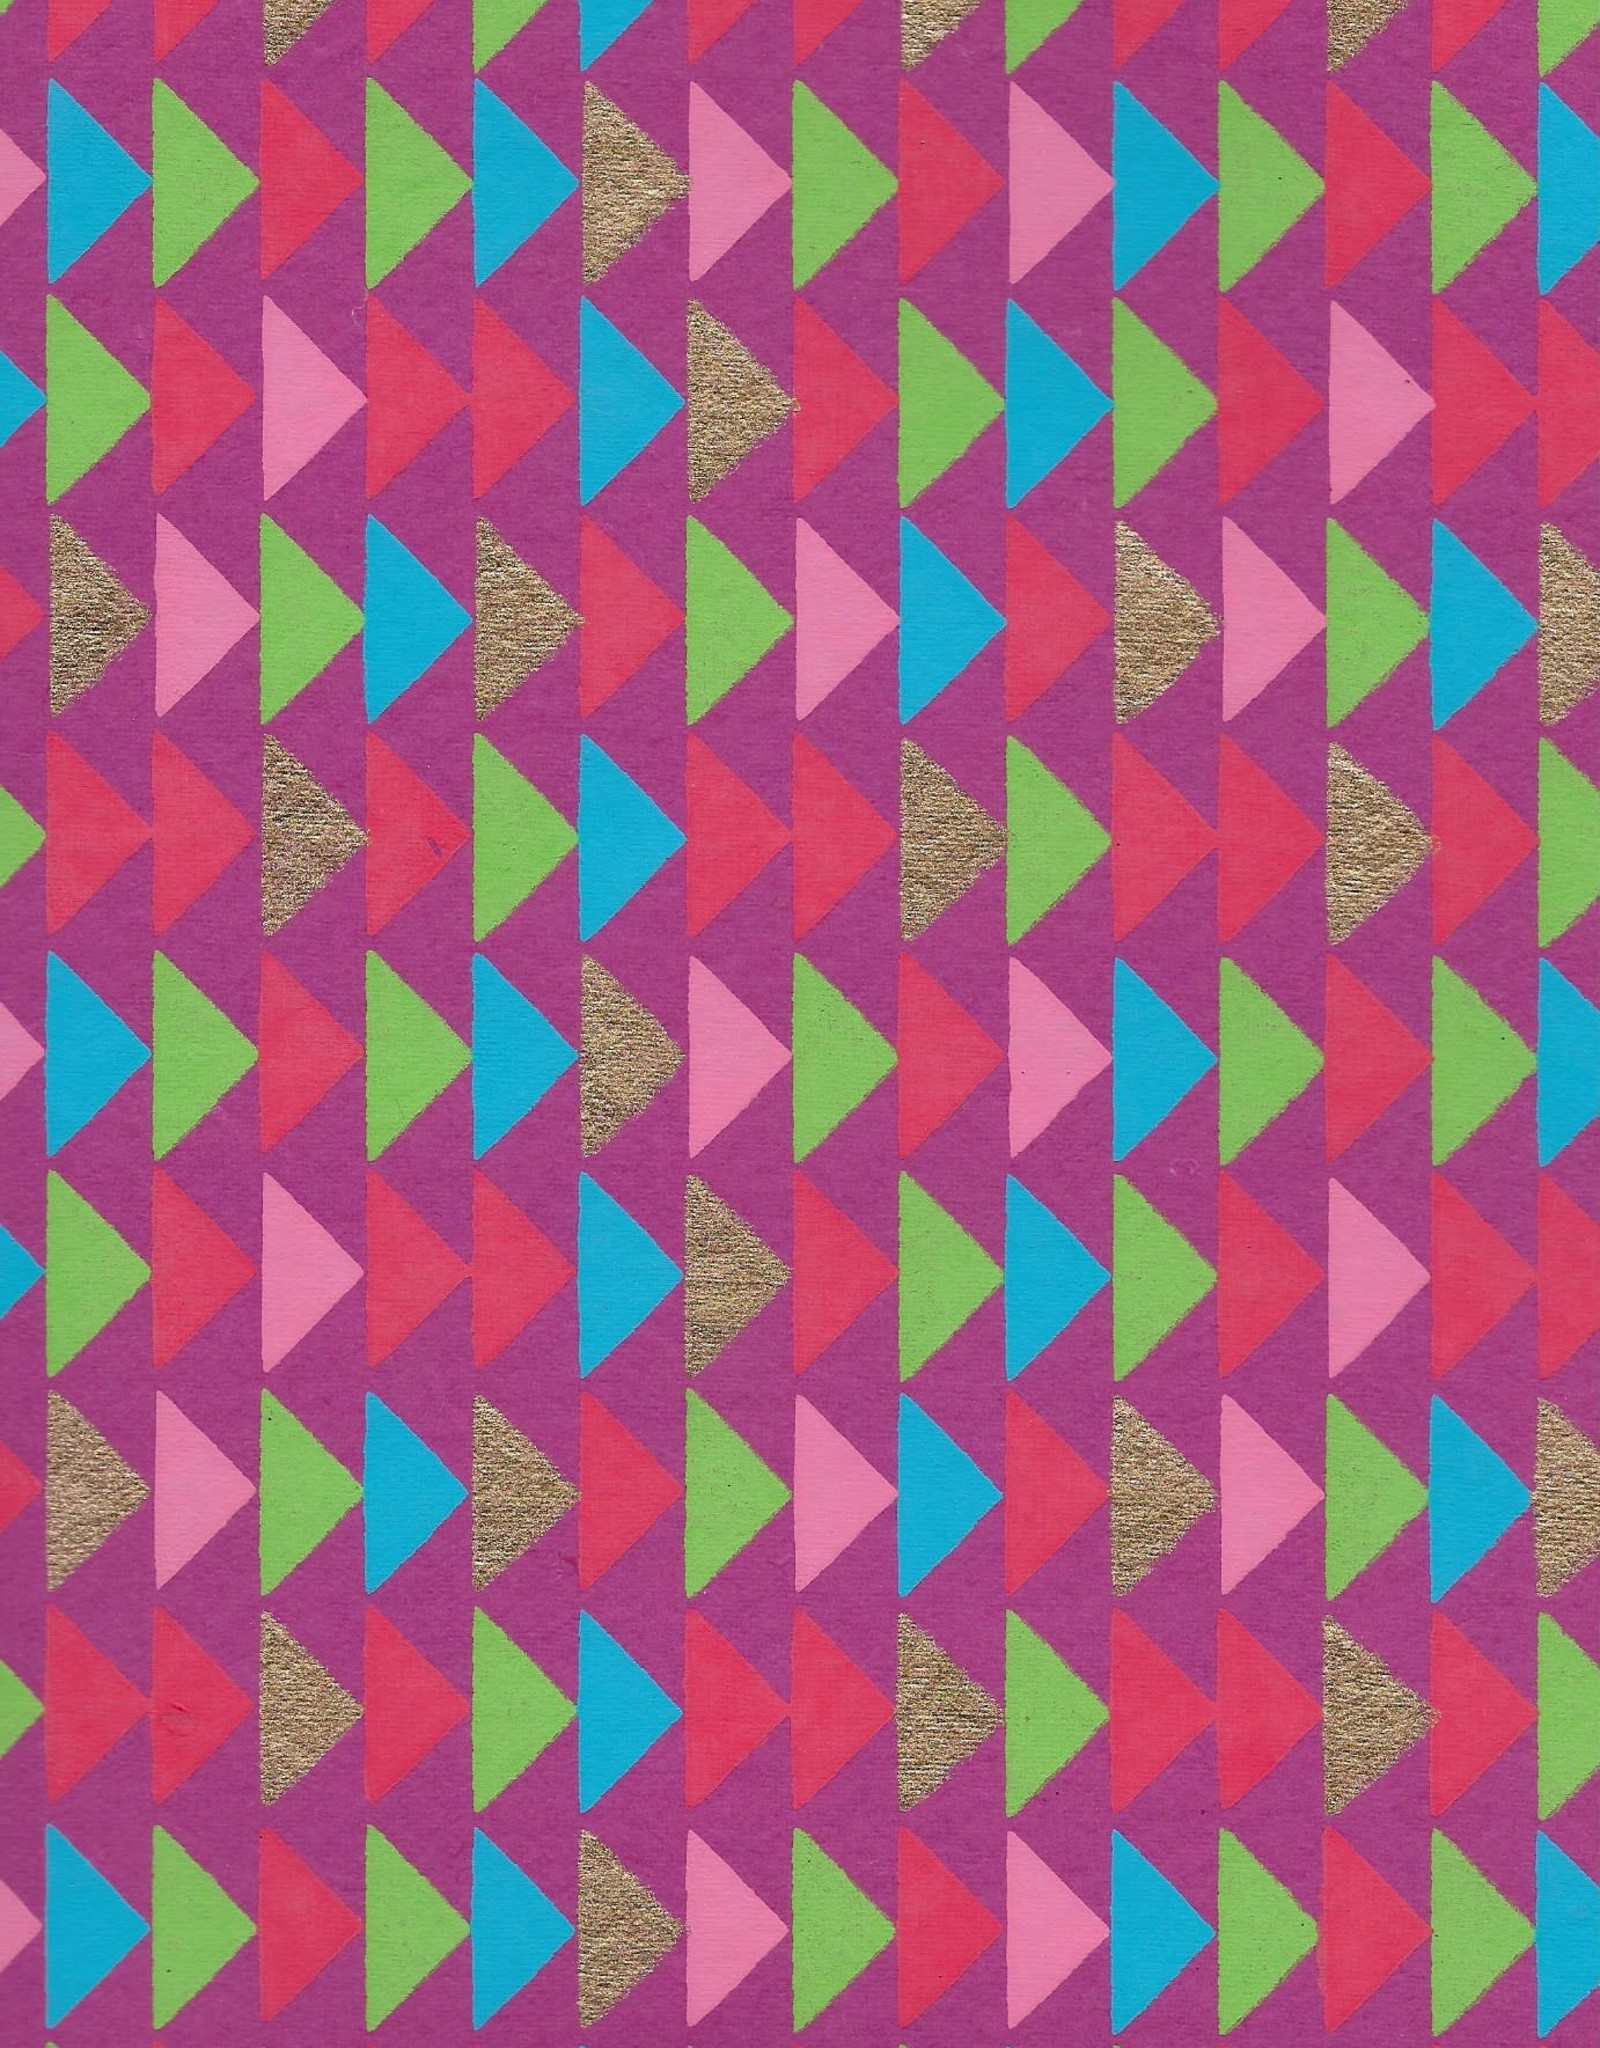 """Triangle Stacks, Red, Pink, Green, Blue, Gold on Magenta, 22"""" x 30"""""""